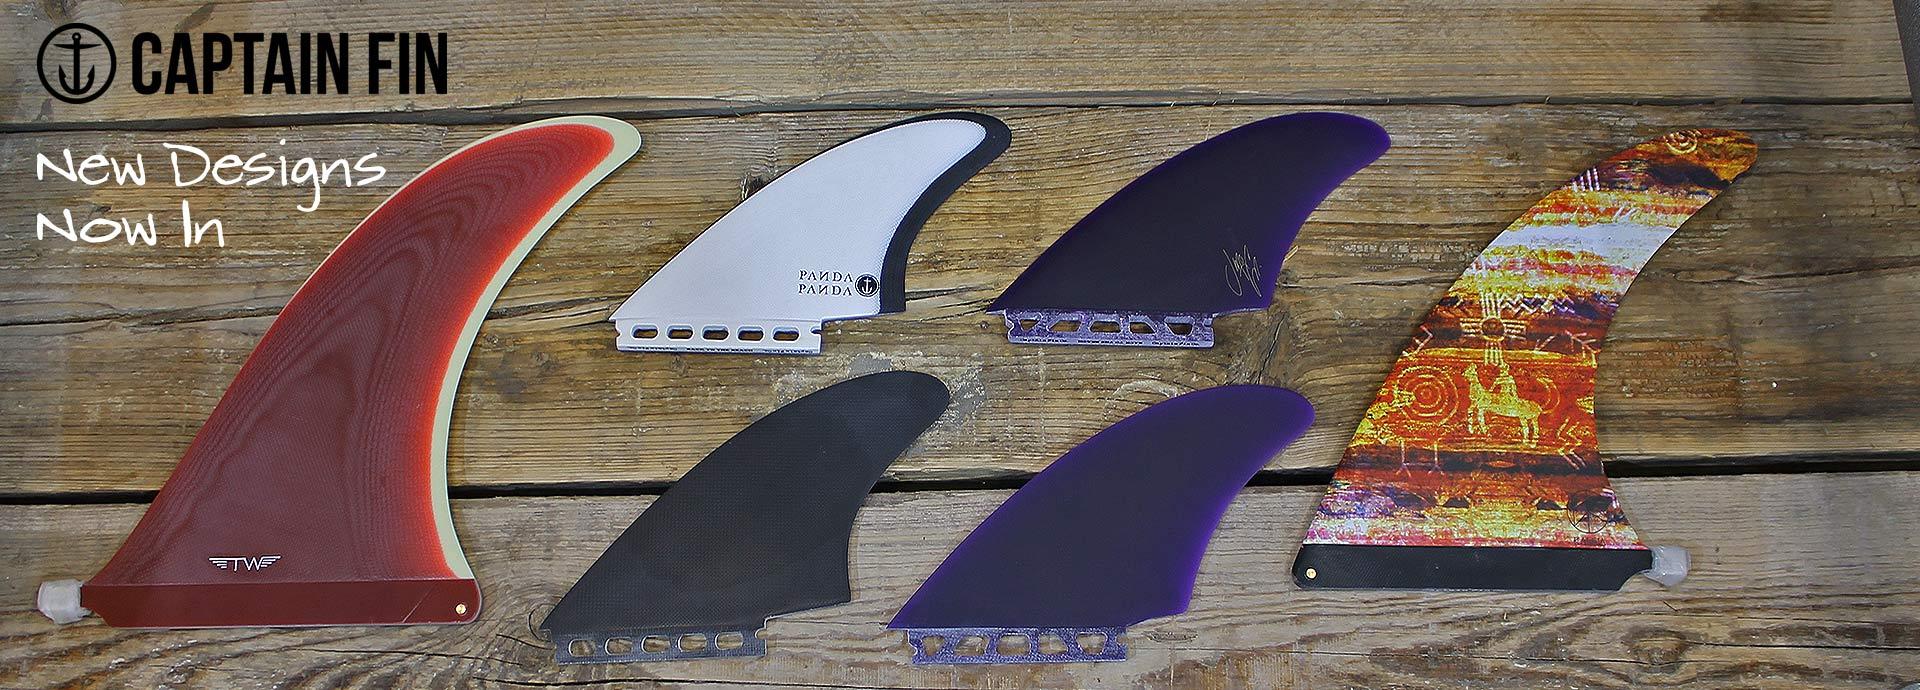 A selection of surf fins by Captain Fin Co